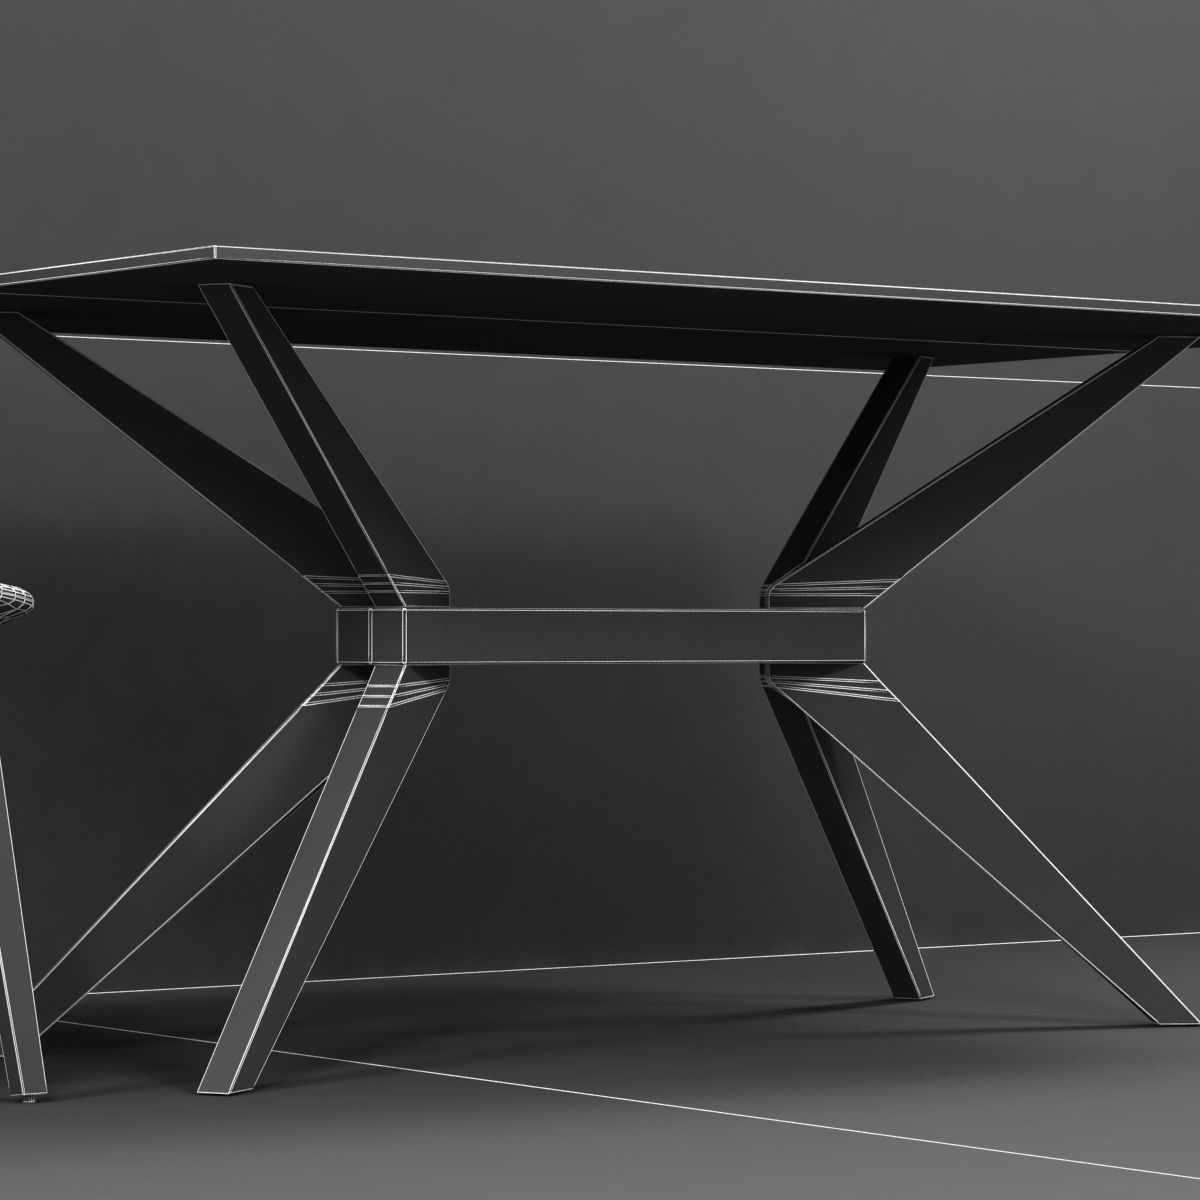 Magna Glass Dining Table by inmod sohocon 3D Model max  : magnaglassdiningtablebyinmodsohoconcepteiffelwoodchair3dmodel11aa7d2a d99a 4b25 bc25 3b7c4ff5c234 from www.cgtrader.com size 1200 x 1200 jpeg 67kB